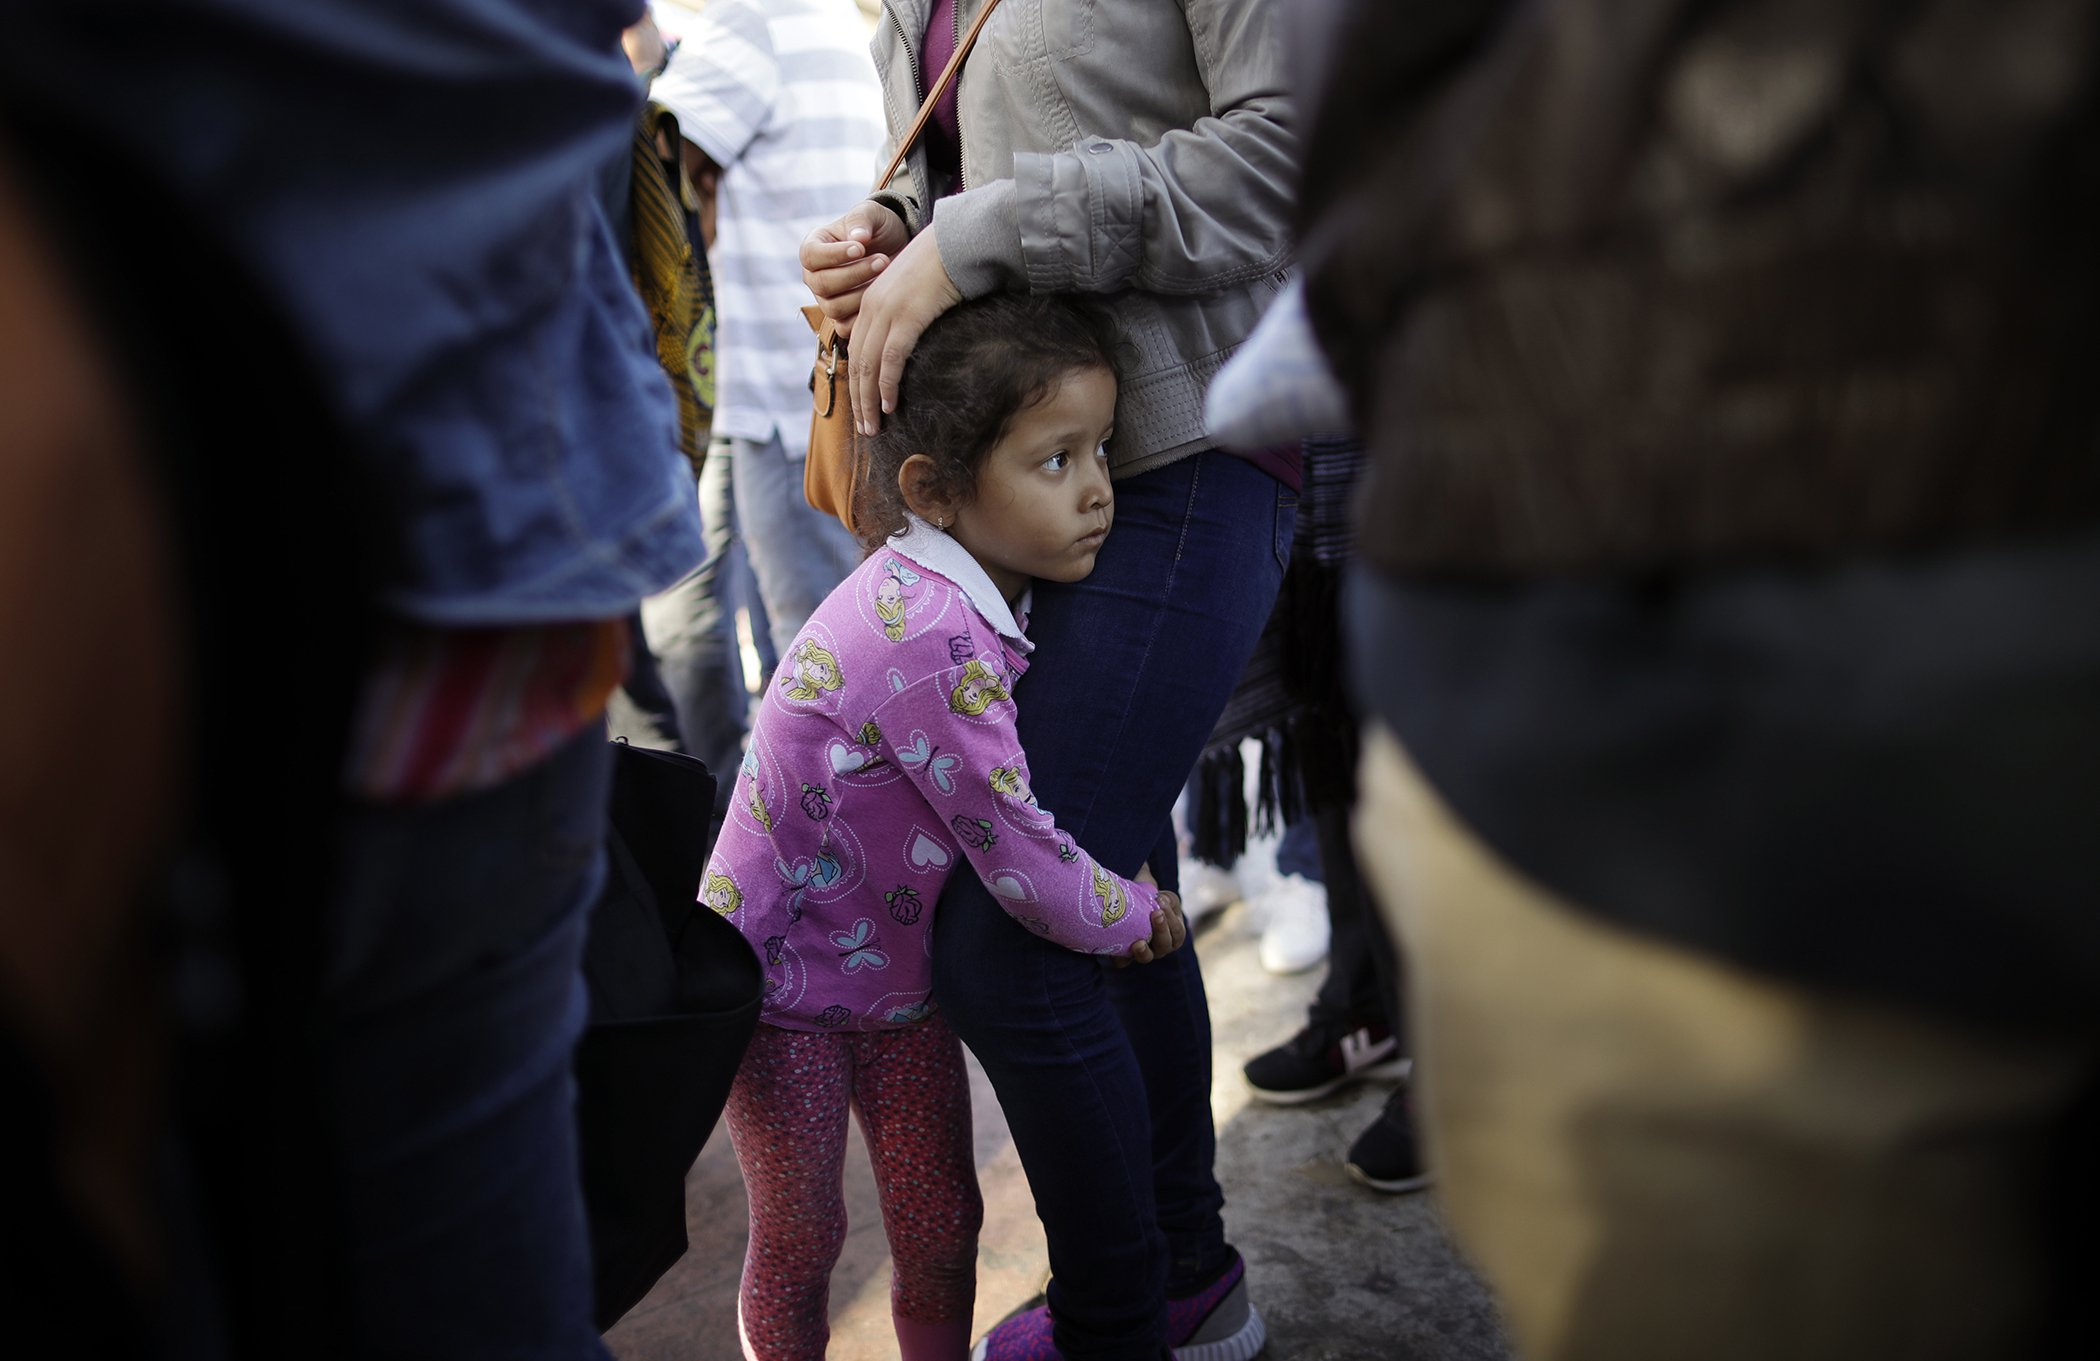 US-Immigration-Family-Separation-Trump.jpg